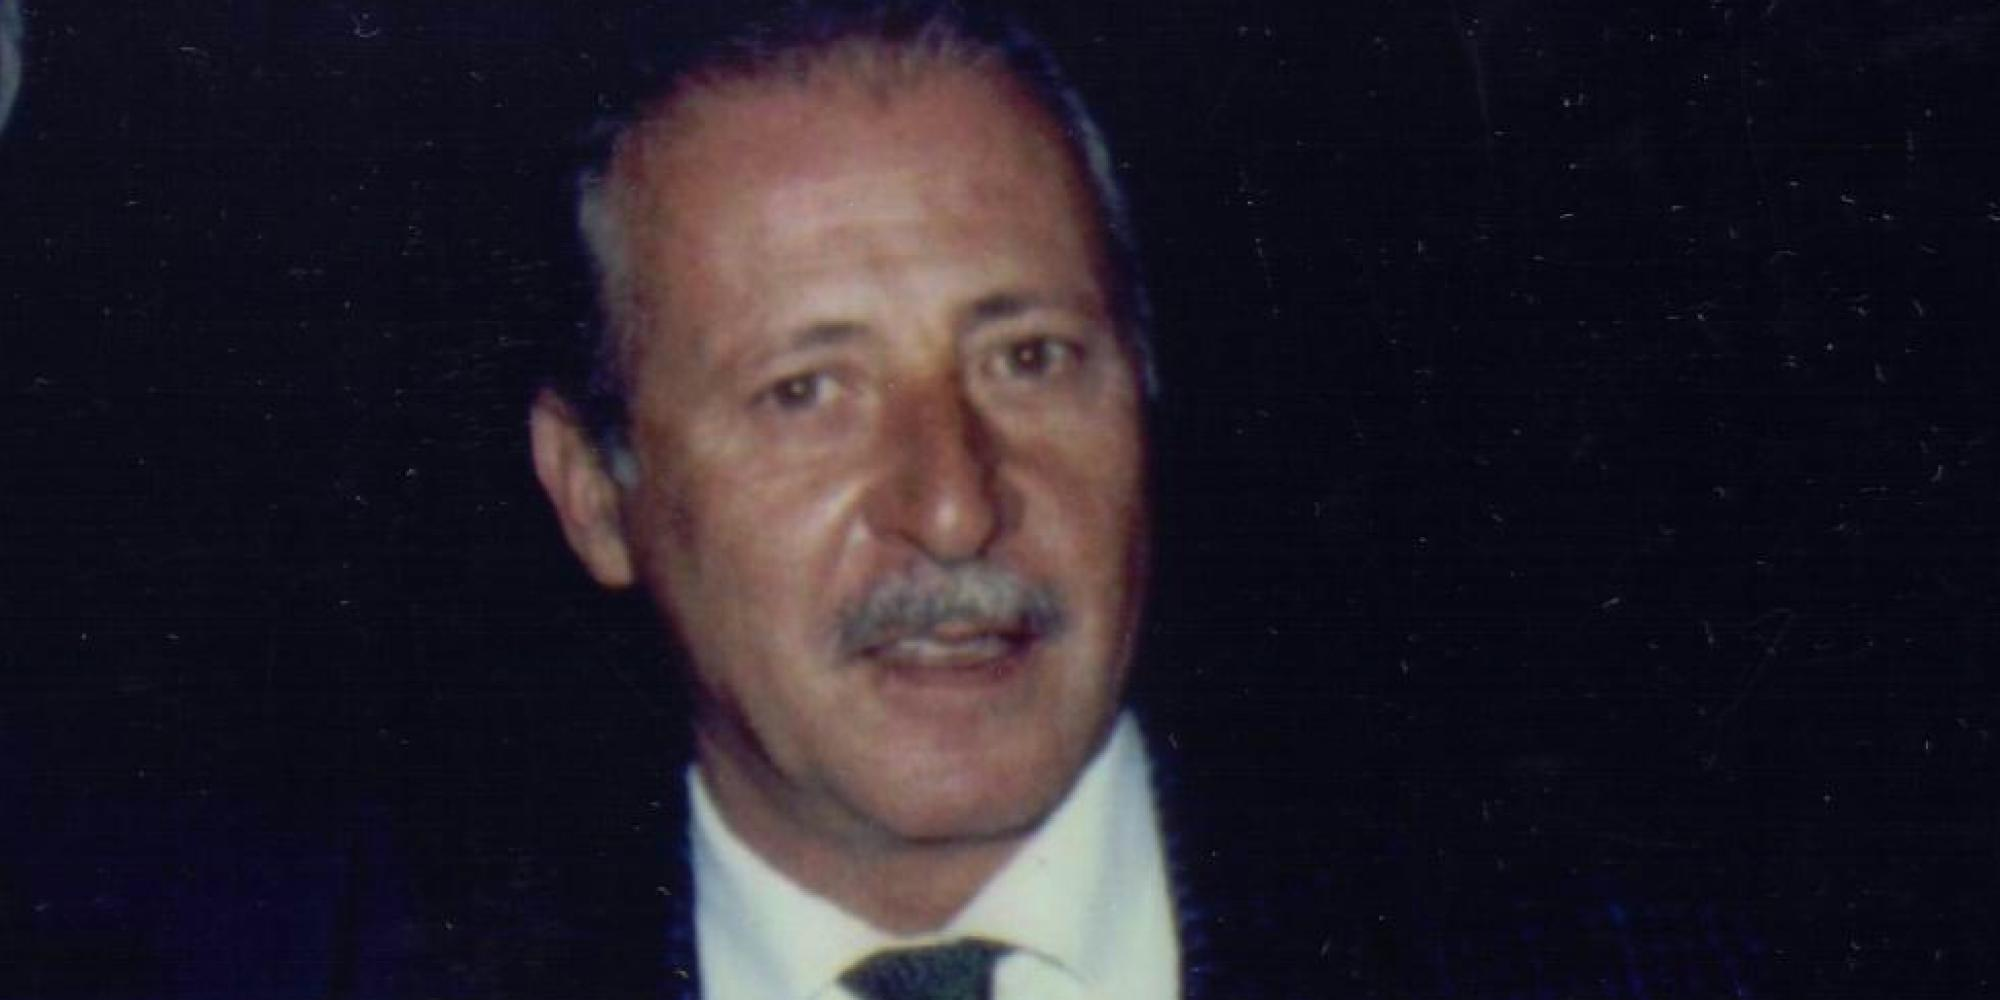 paolo borsellino - photo #9